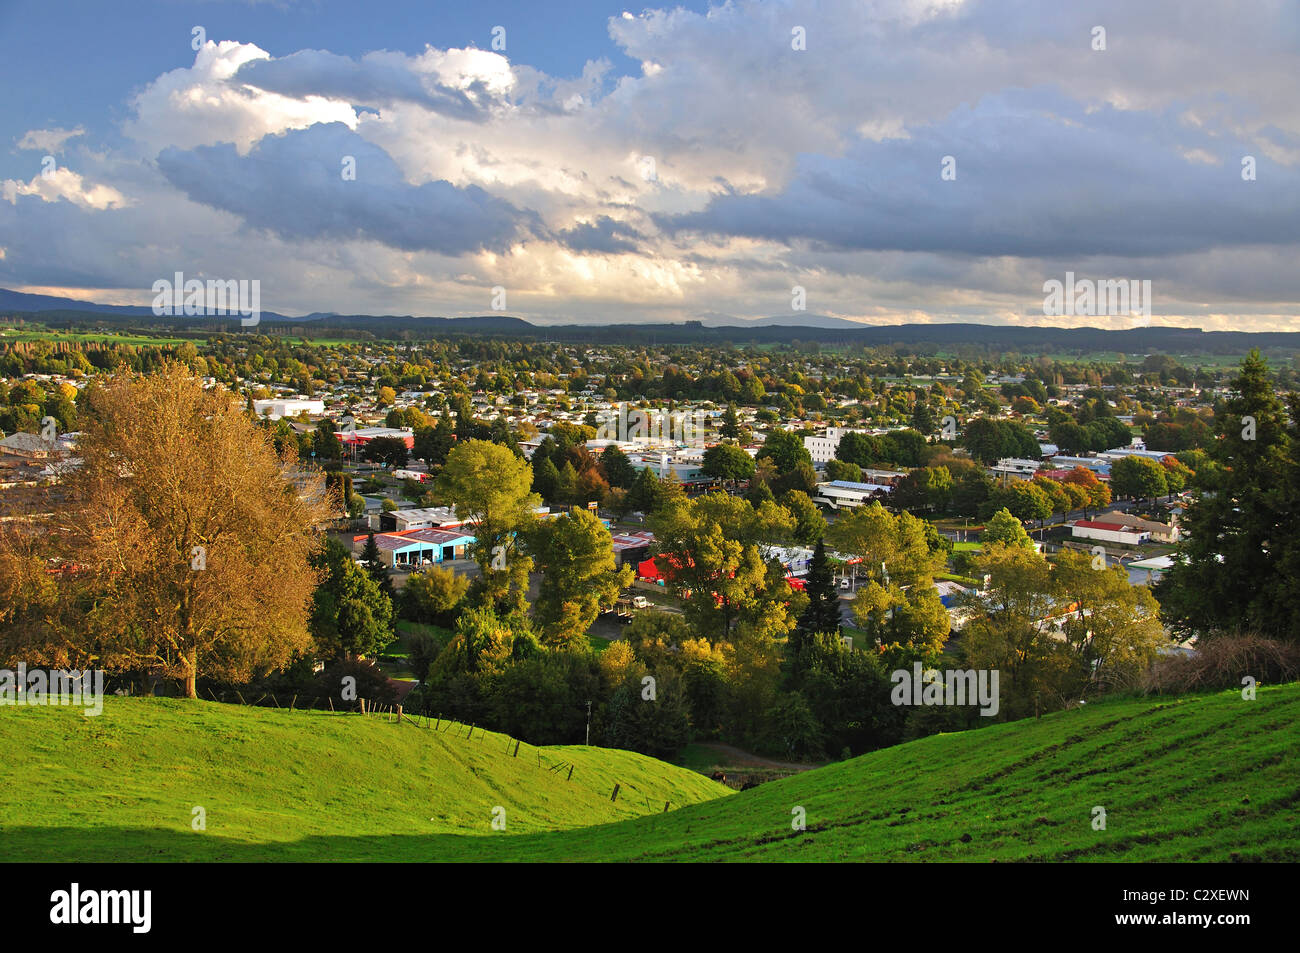 View of town from Colson Hill Lookout, Tokoroa, Waikato Region, North Island, New Zealand - Stock Image